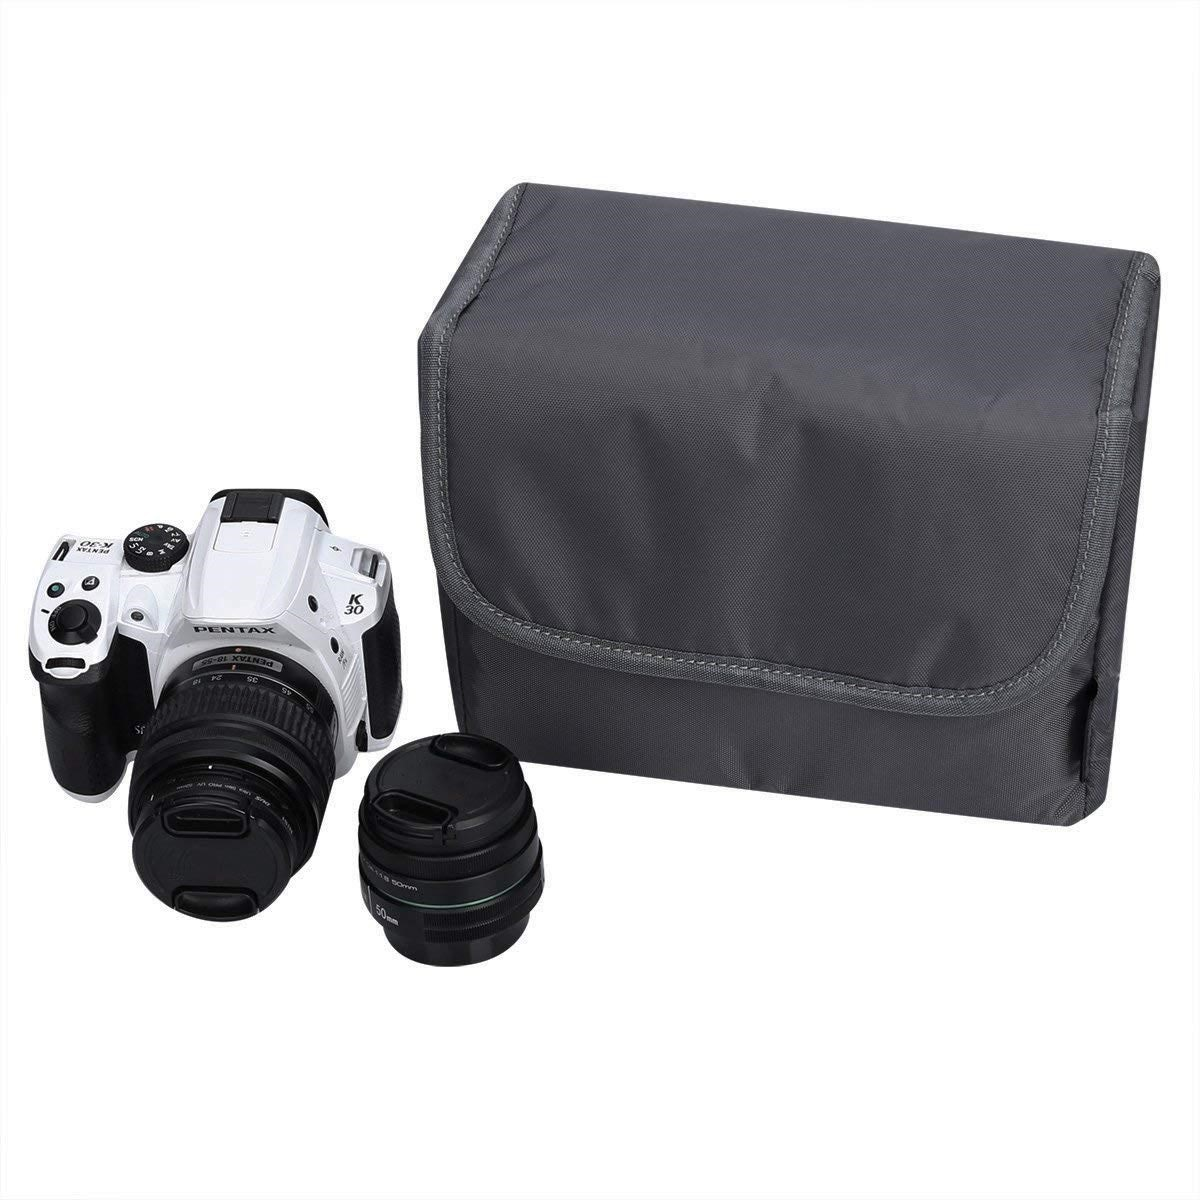 Ericdress Plain Waterproof SLR Camera Unisex Bag